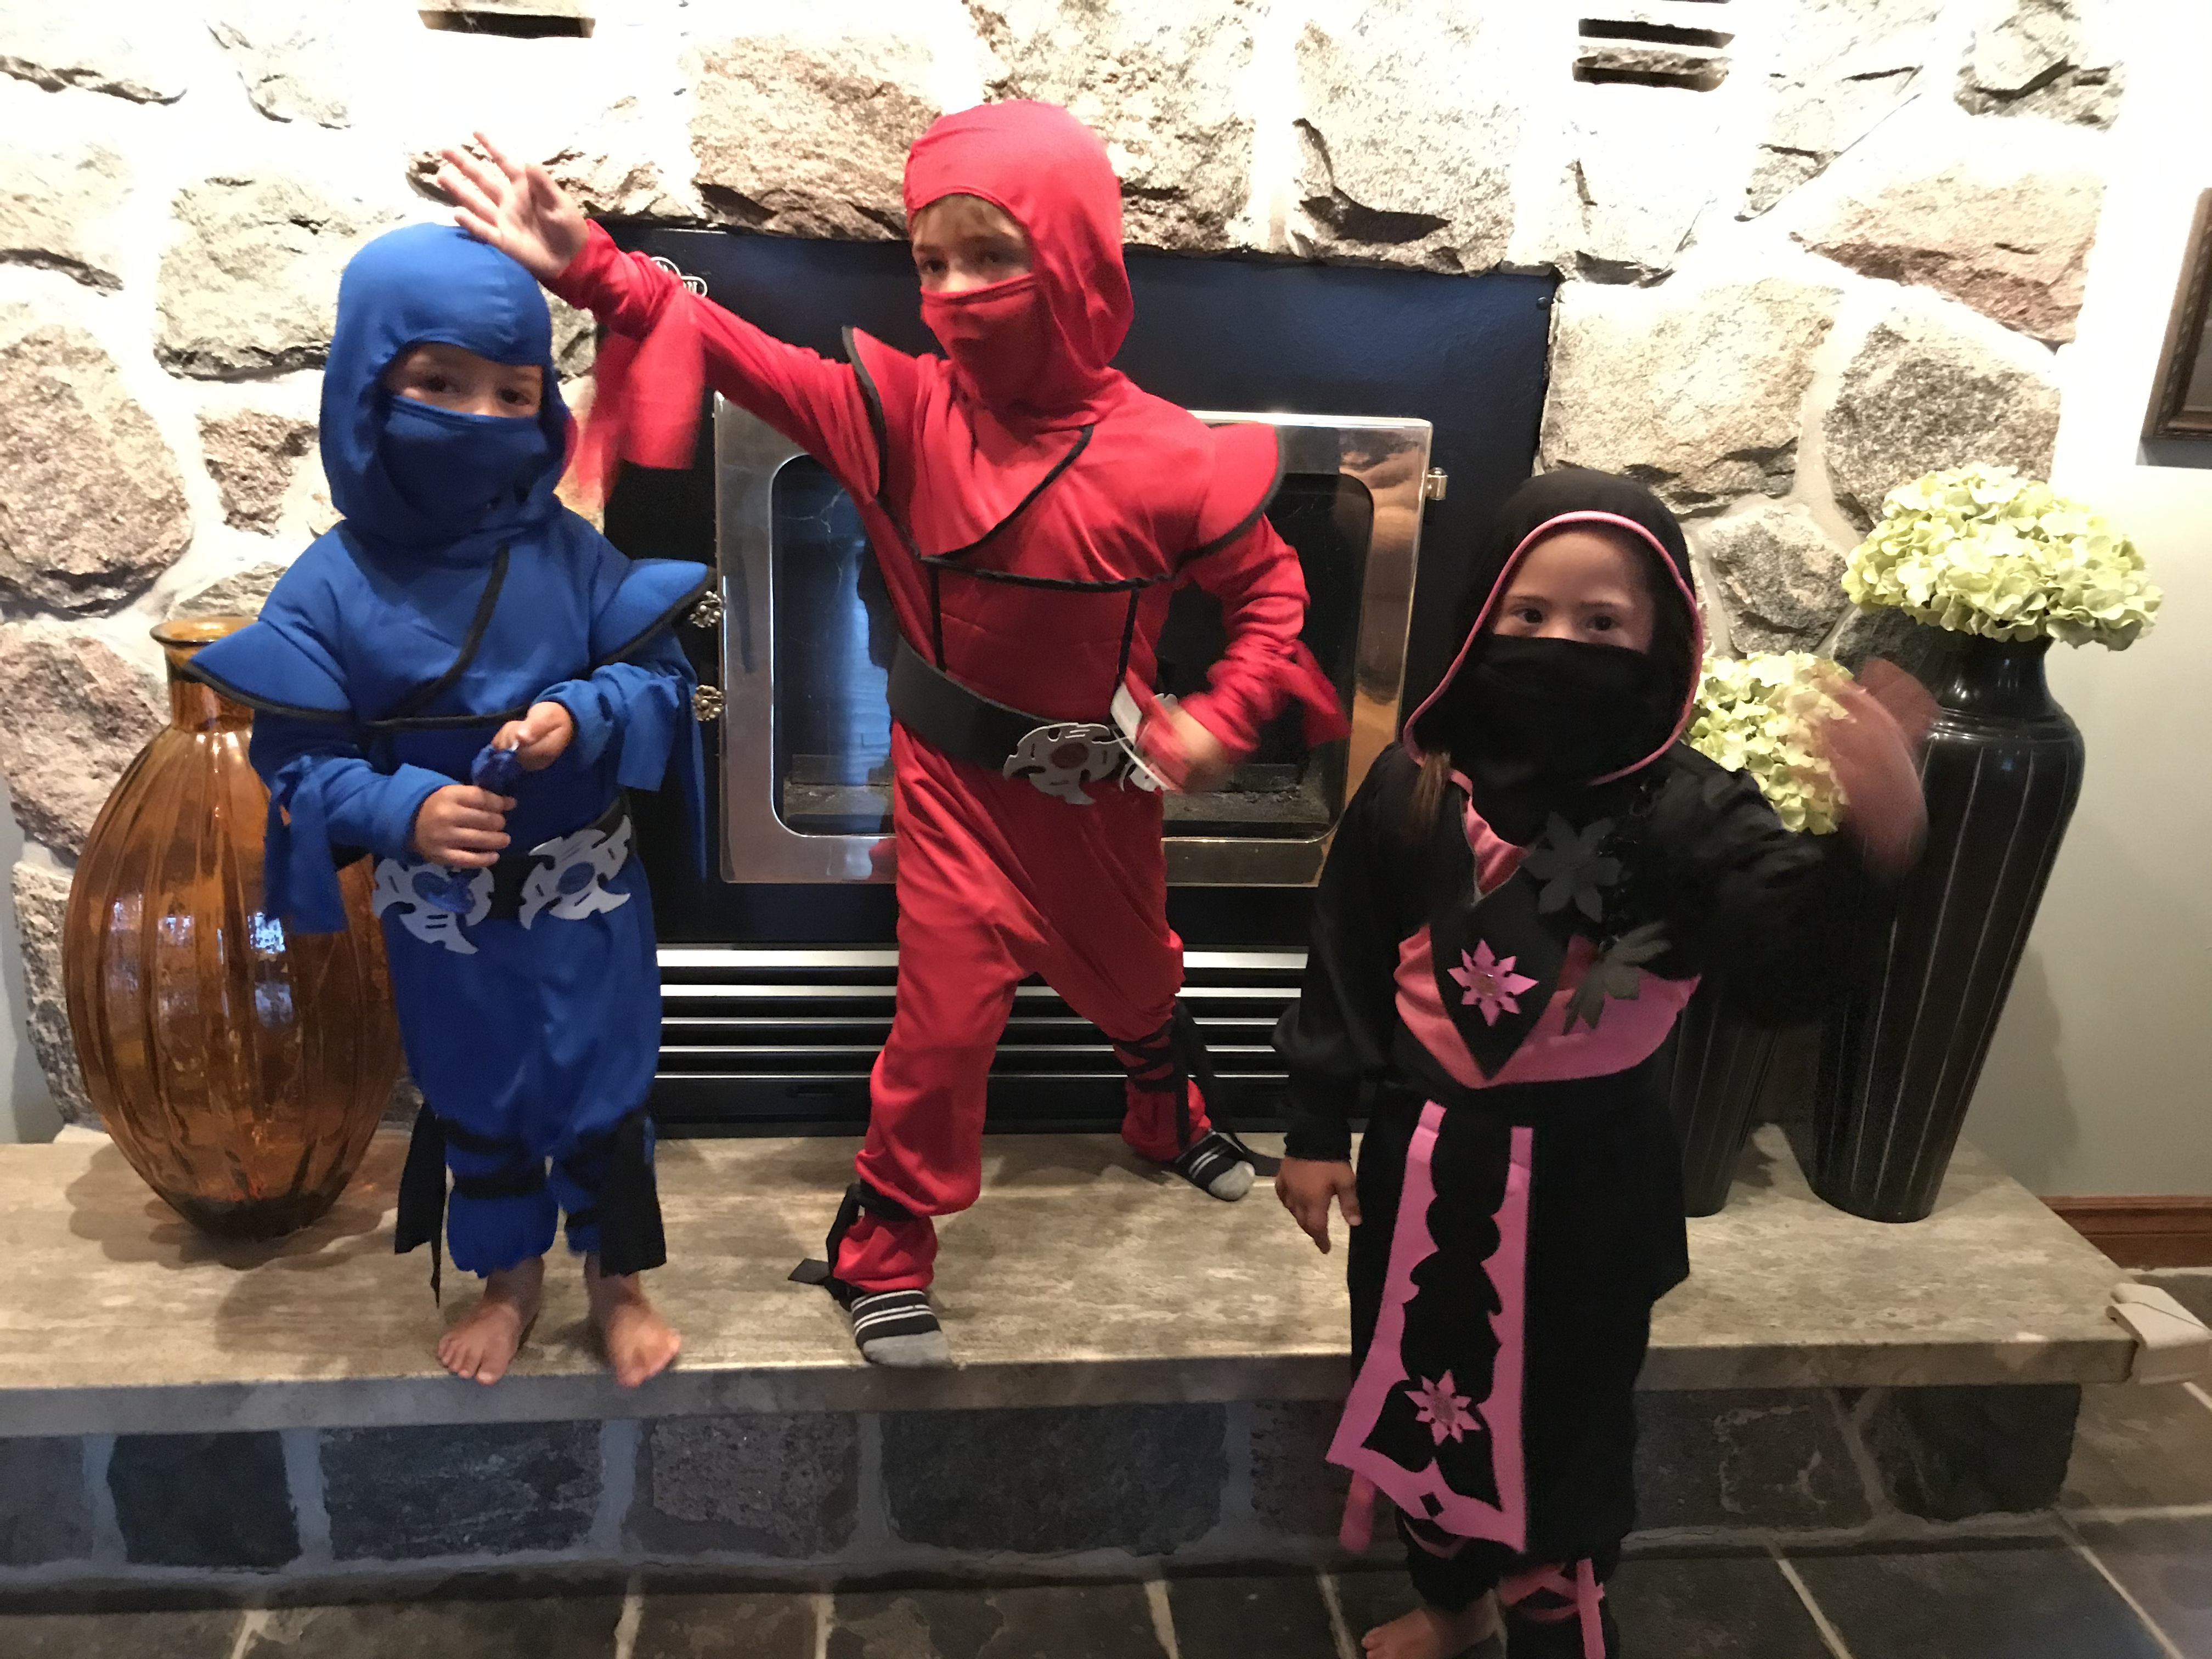 Children in Halloween costumes: ninjas in blue, red, and black outfits